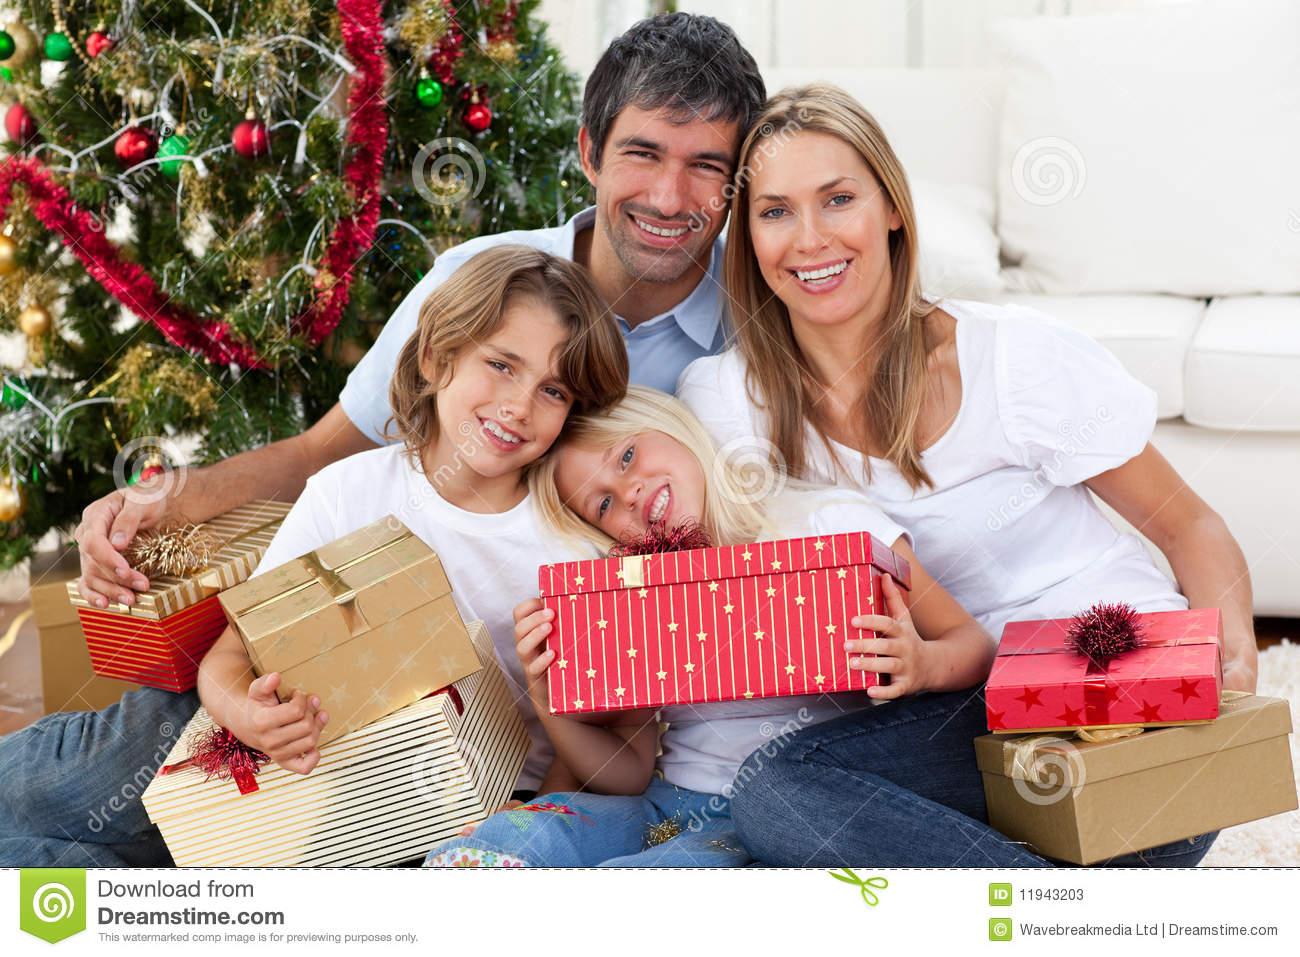 Happy Family Holding Christmas Gifts Stock Image - Image of female ...